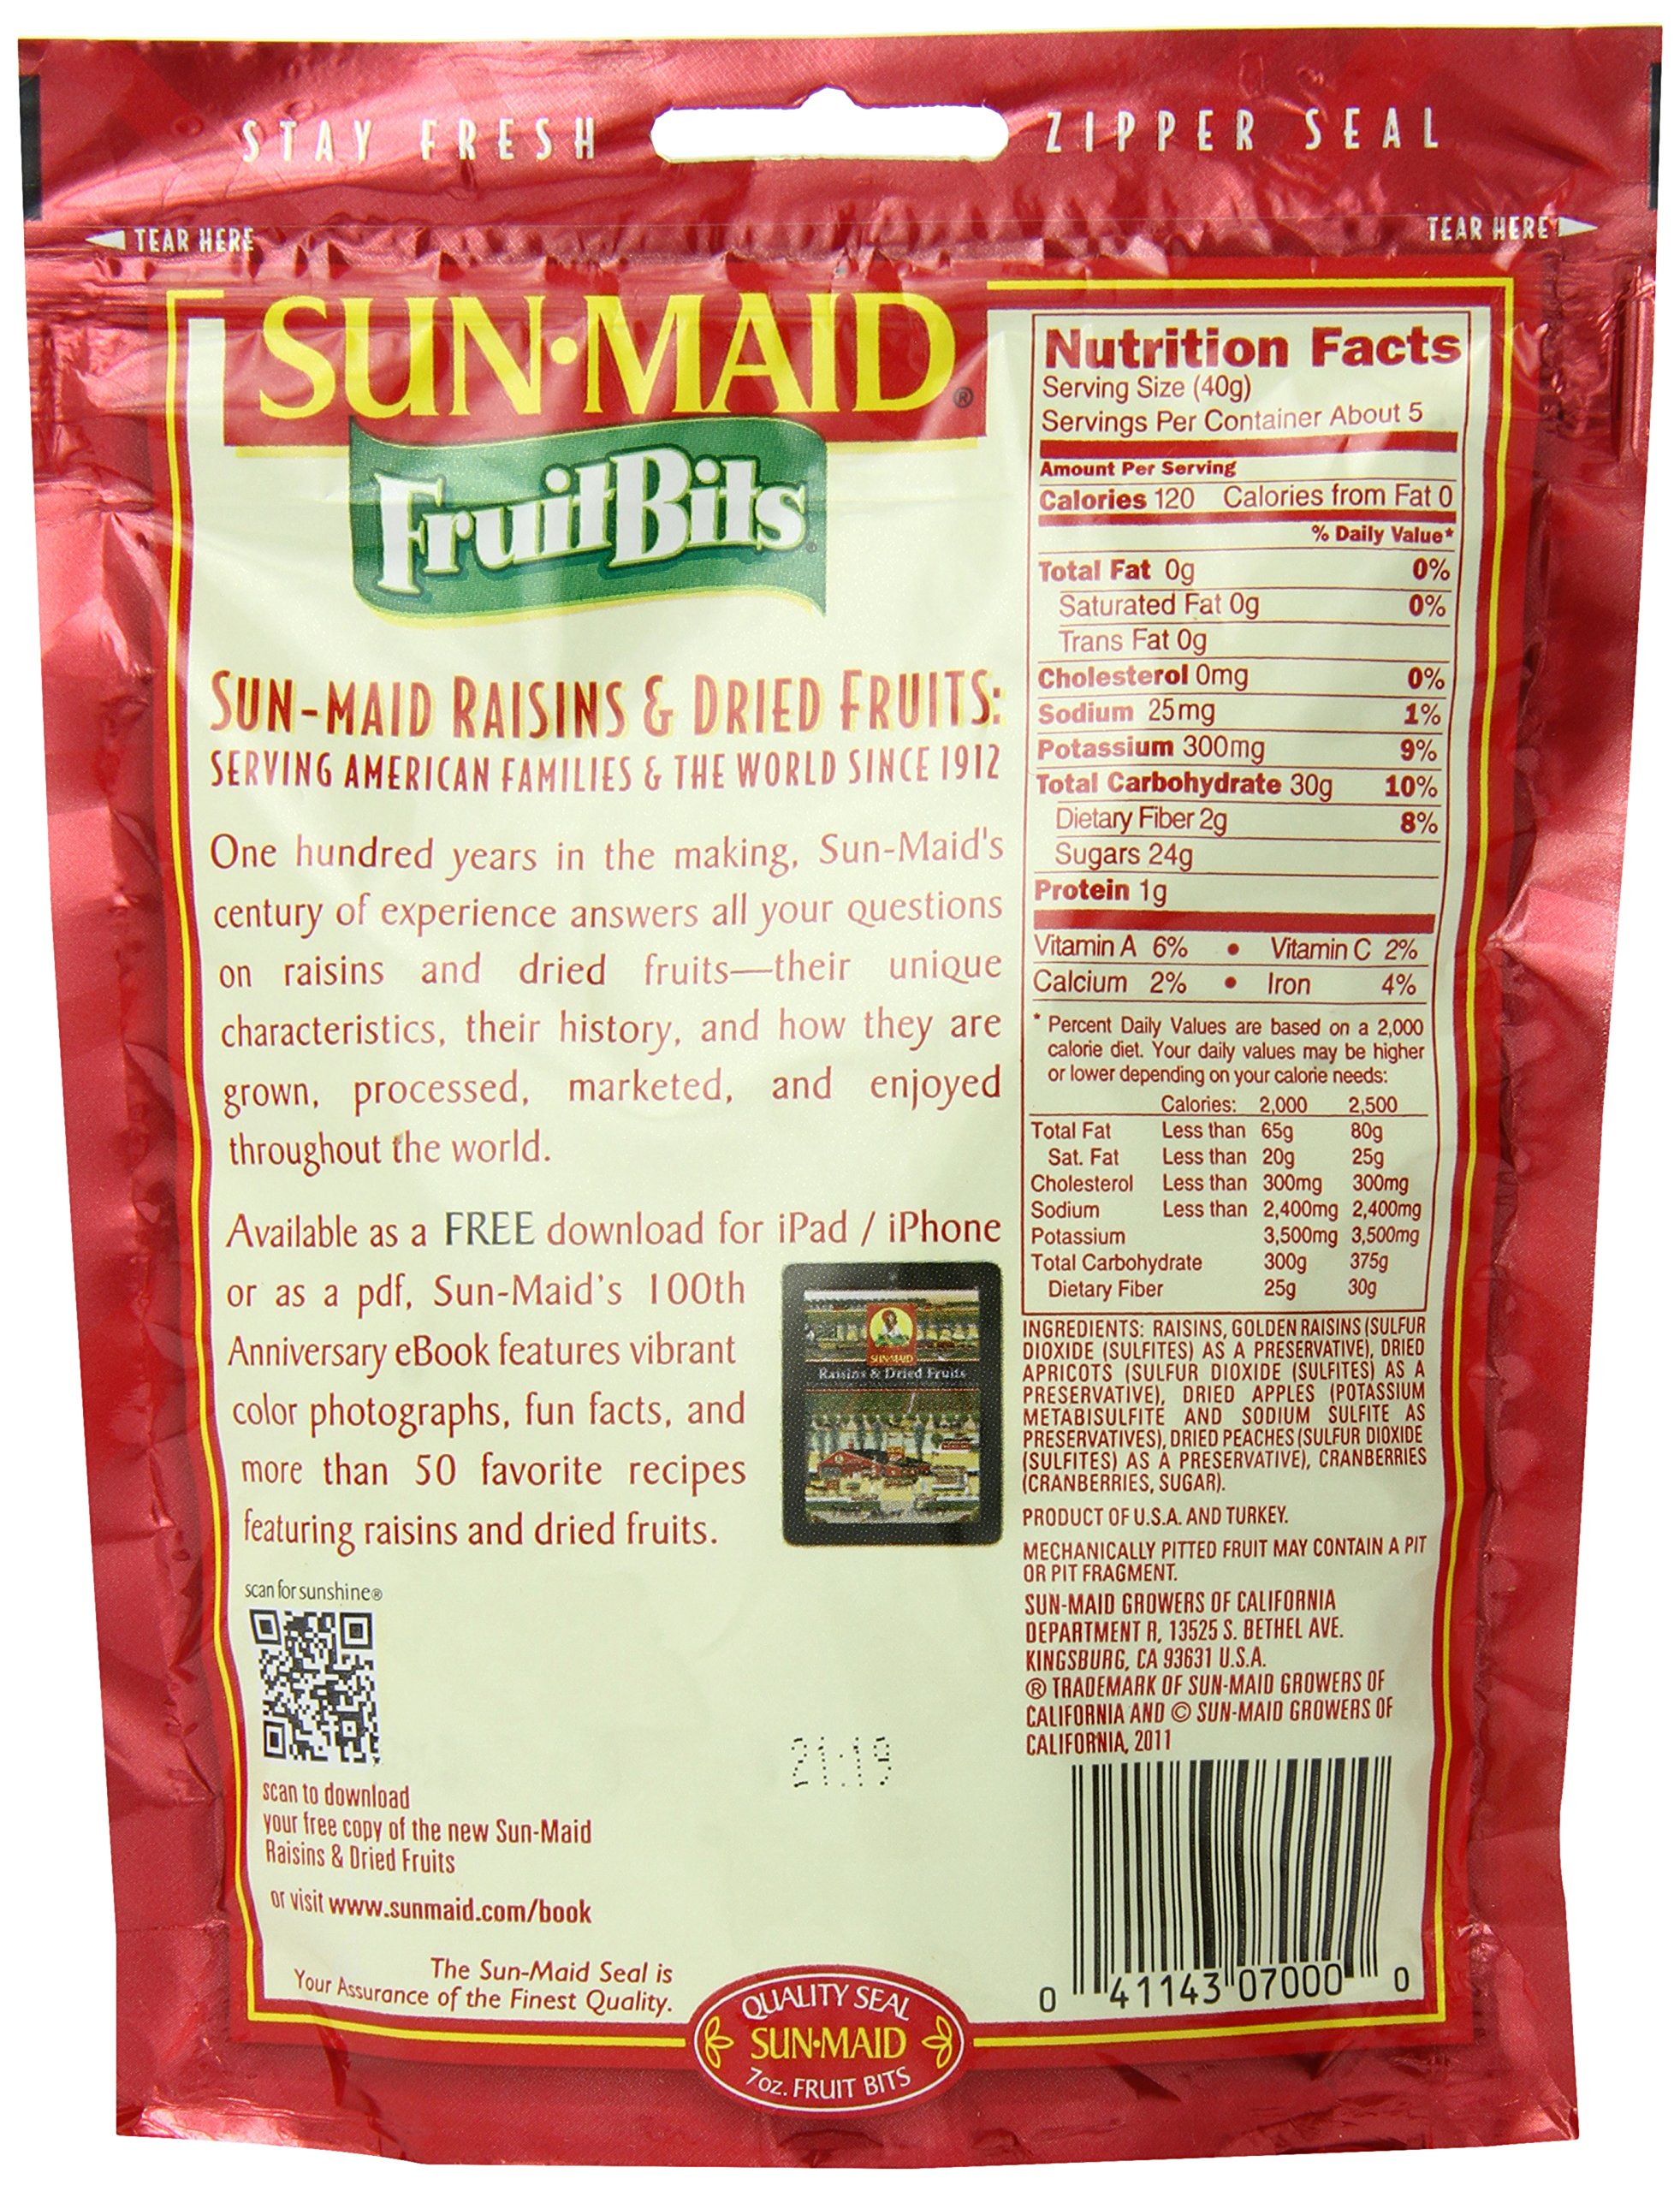 Sun Maid Fruit Bits, 7-Ounce Bags (Pack of 6) by Sun Maid (Image #4)